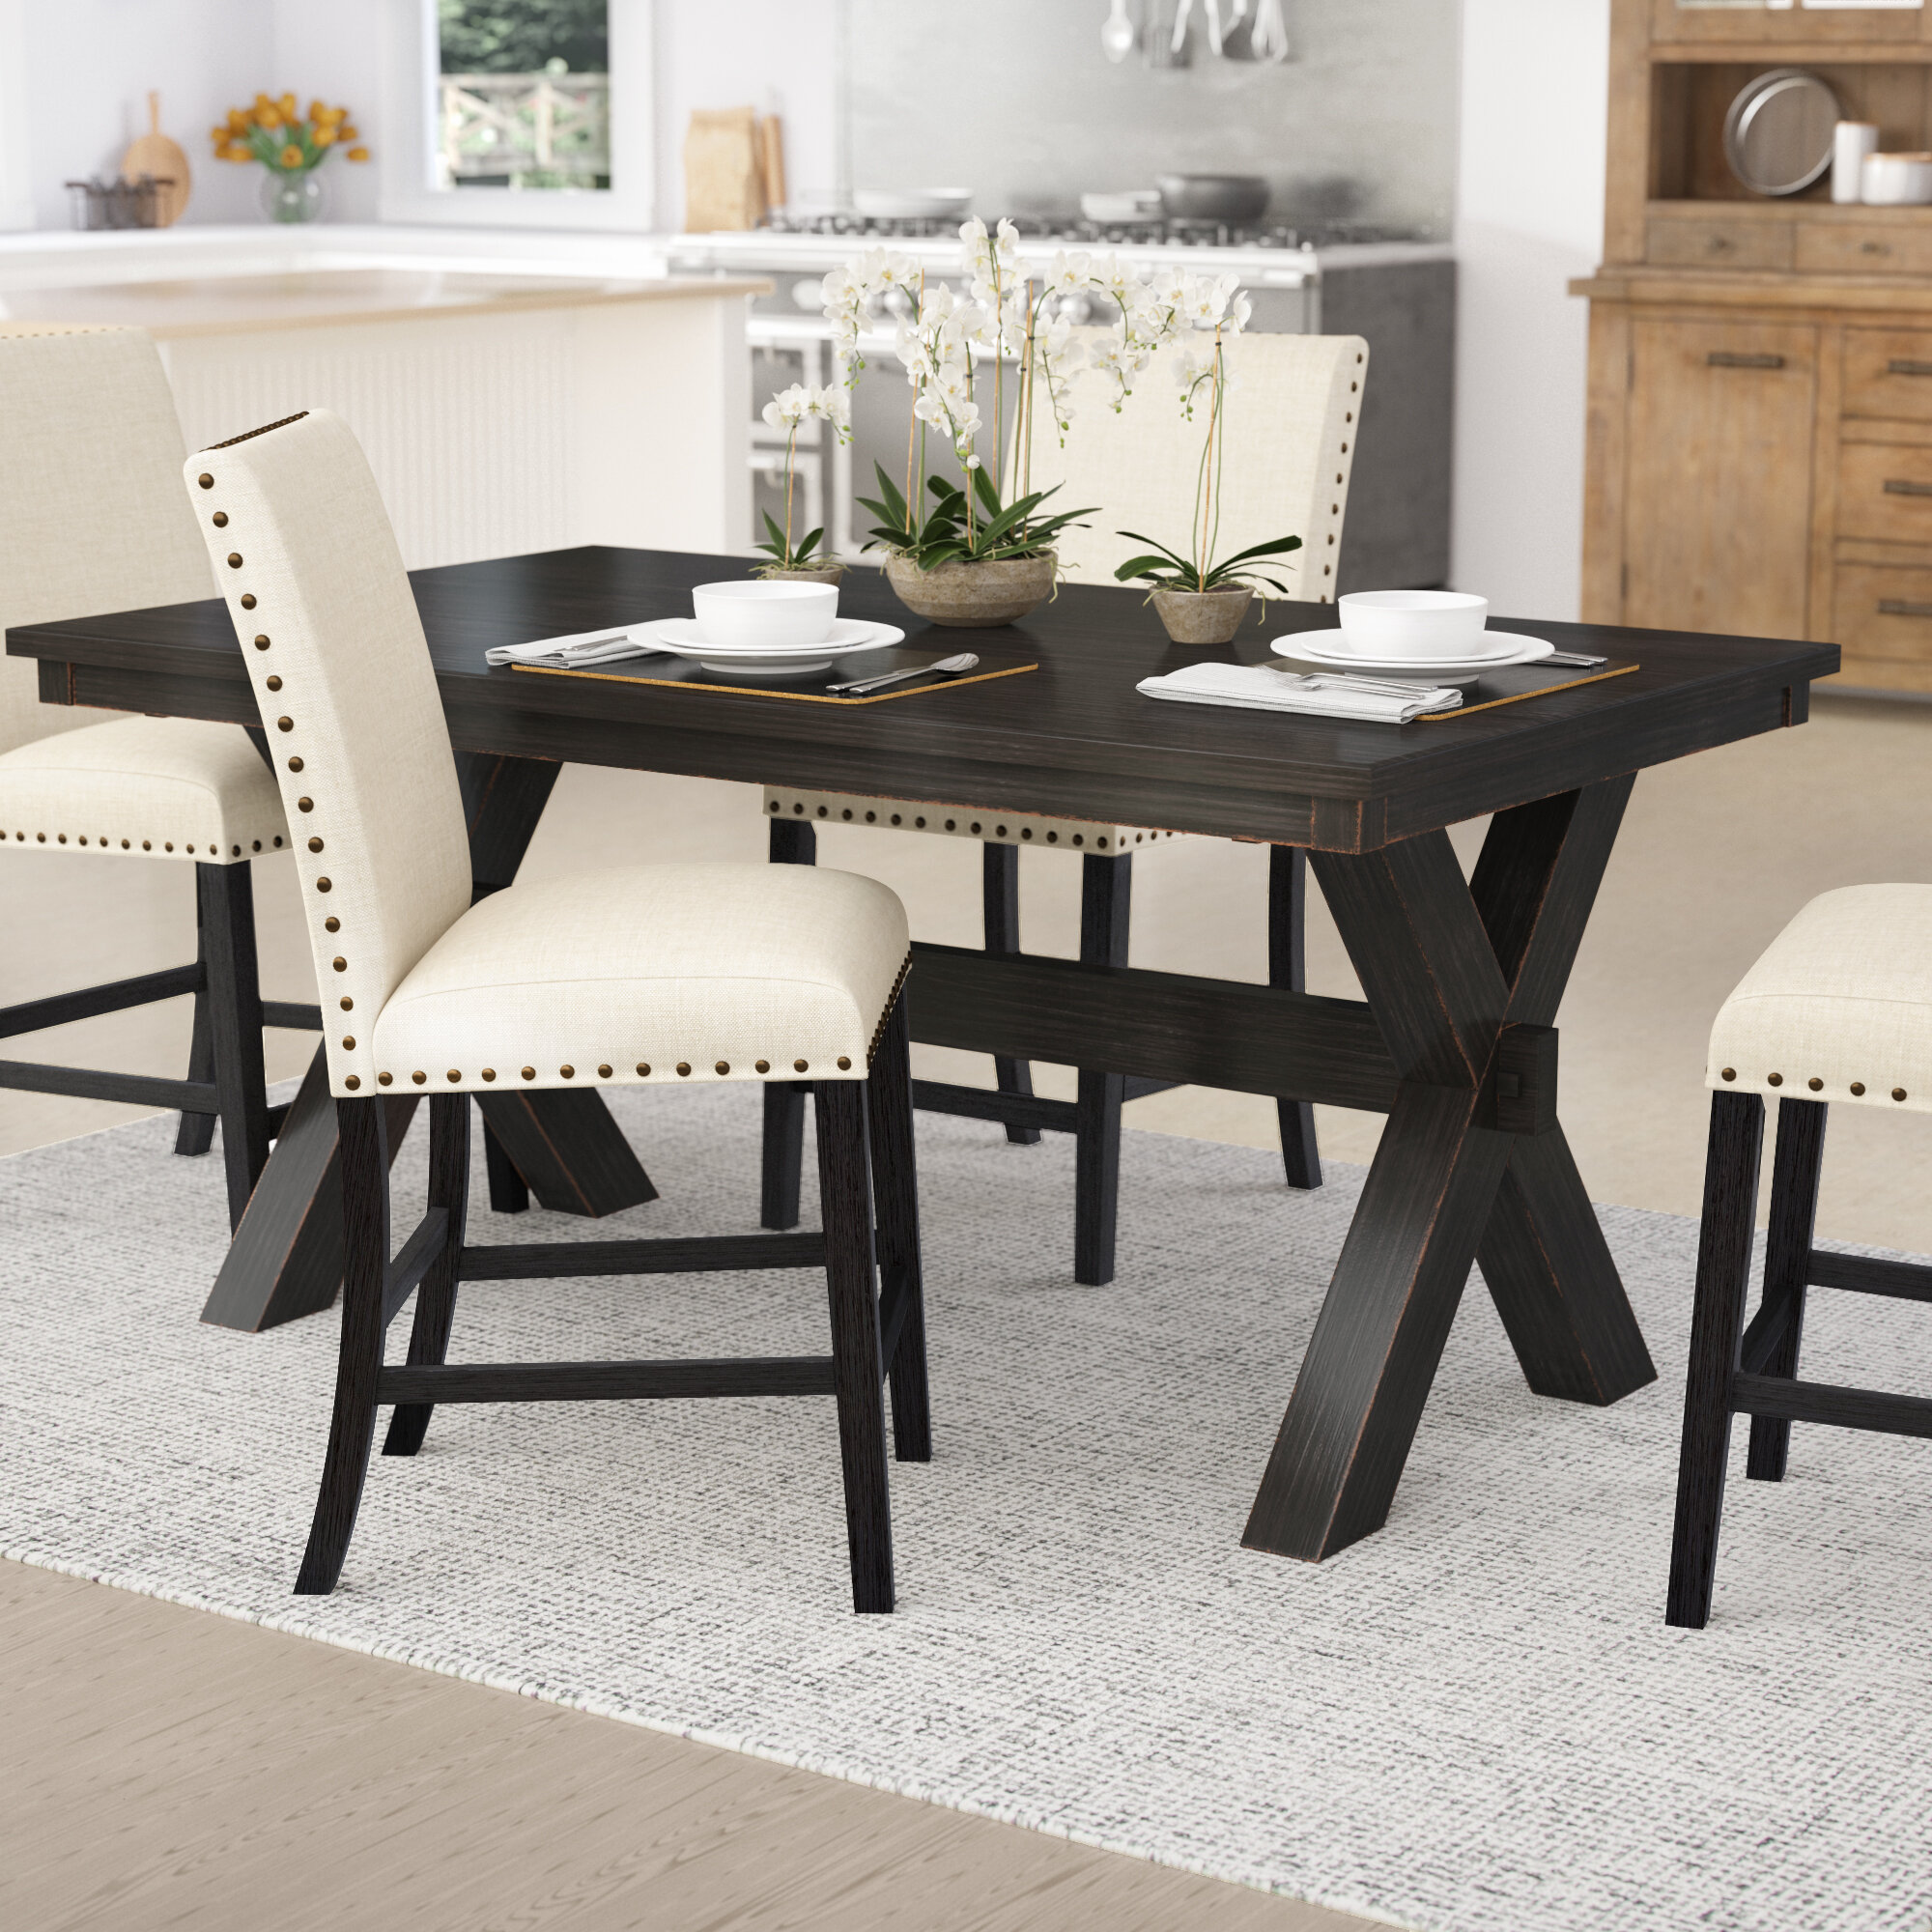 Laurel foundry modern farmhouse manitou transitional dining table reviews wayfair ca